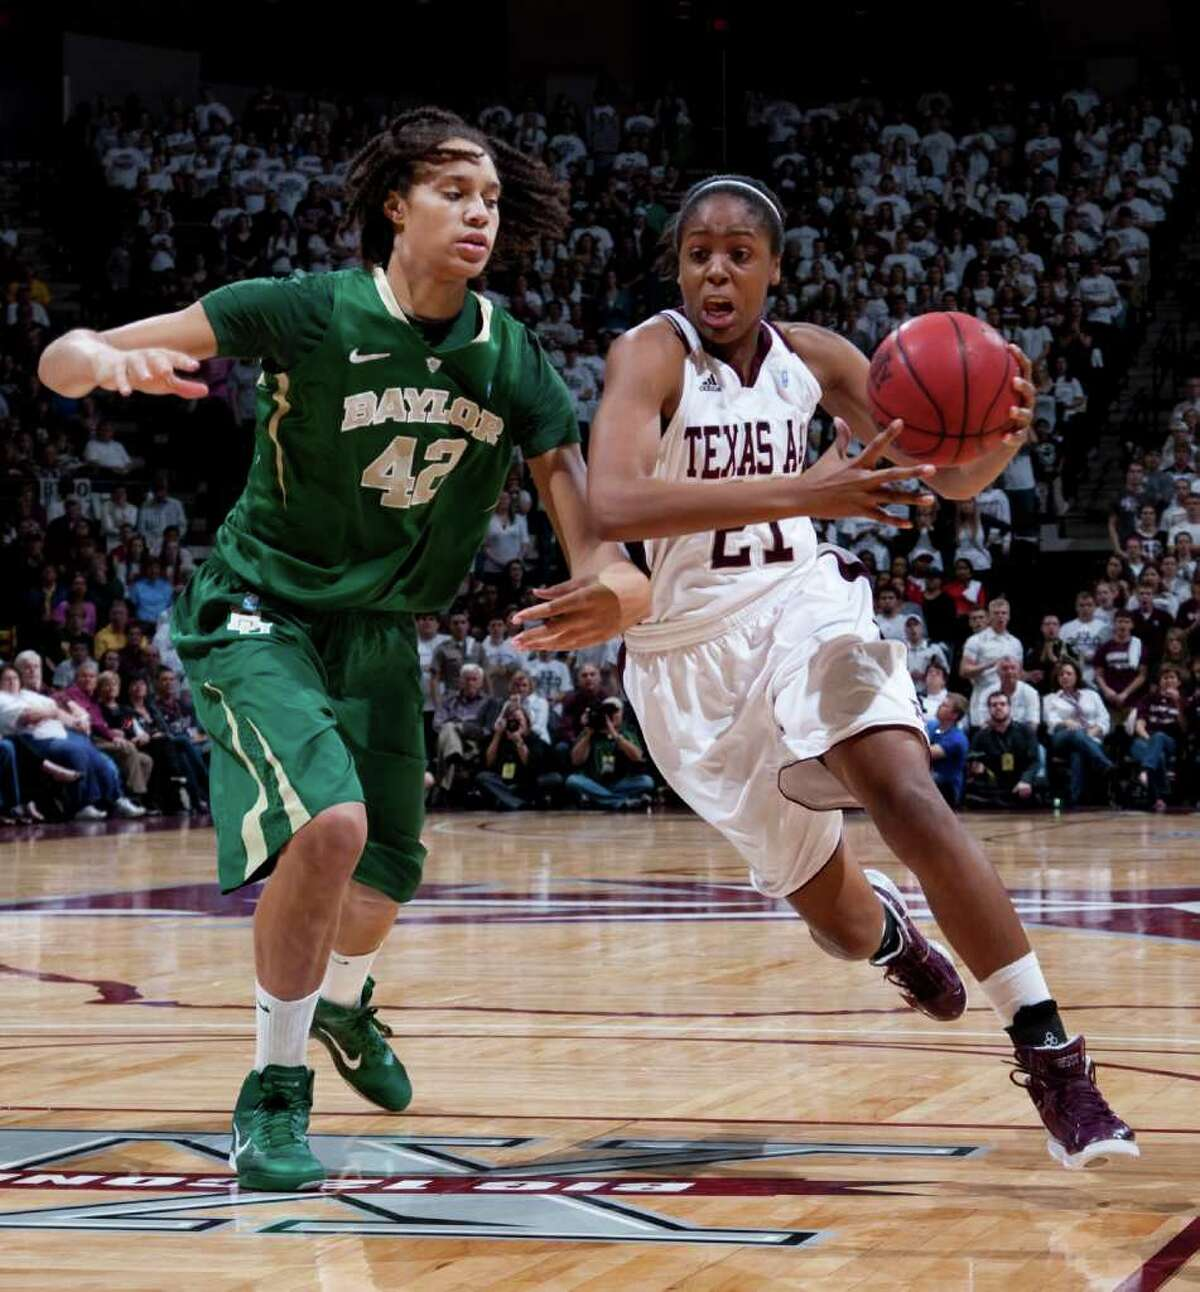 Texas A&M forward Adaora Elonu drives the ball on Baylor's Brittney Griner during the first half on Sunday, Jan. 30, 2011, in College Station.